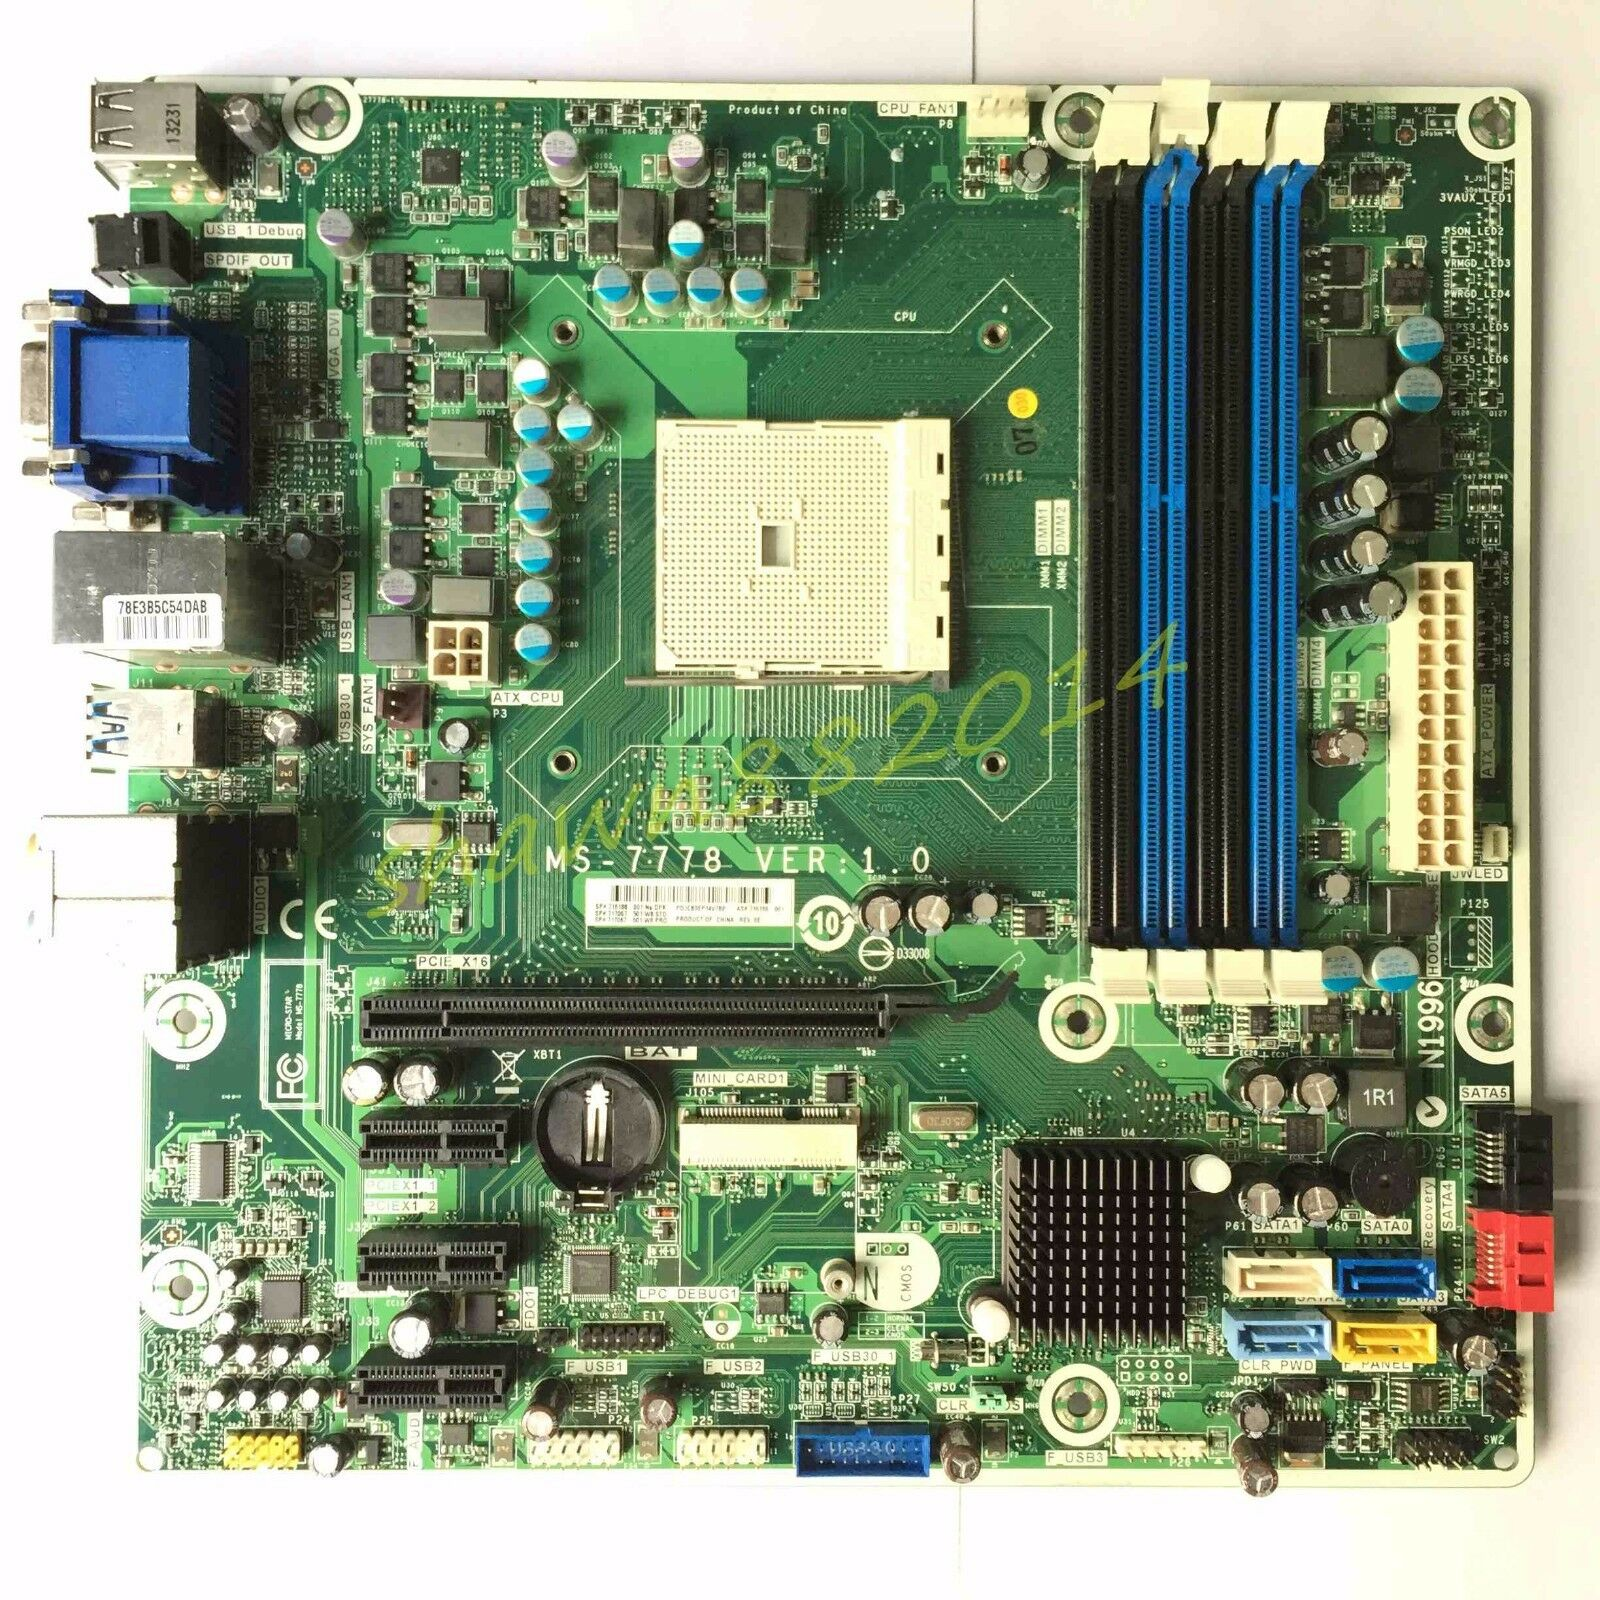 s l1600 hp ms 7778 ver 1 0 socket fm2 motherboard 716188 001 ebay MSI MS 7778 Bios at gsmportal.co